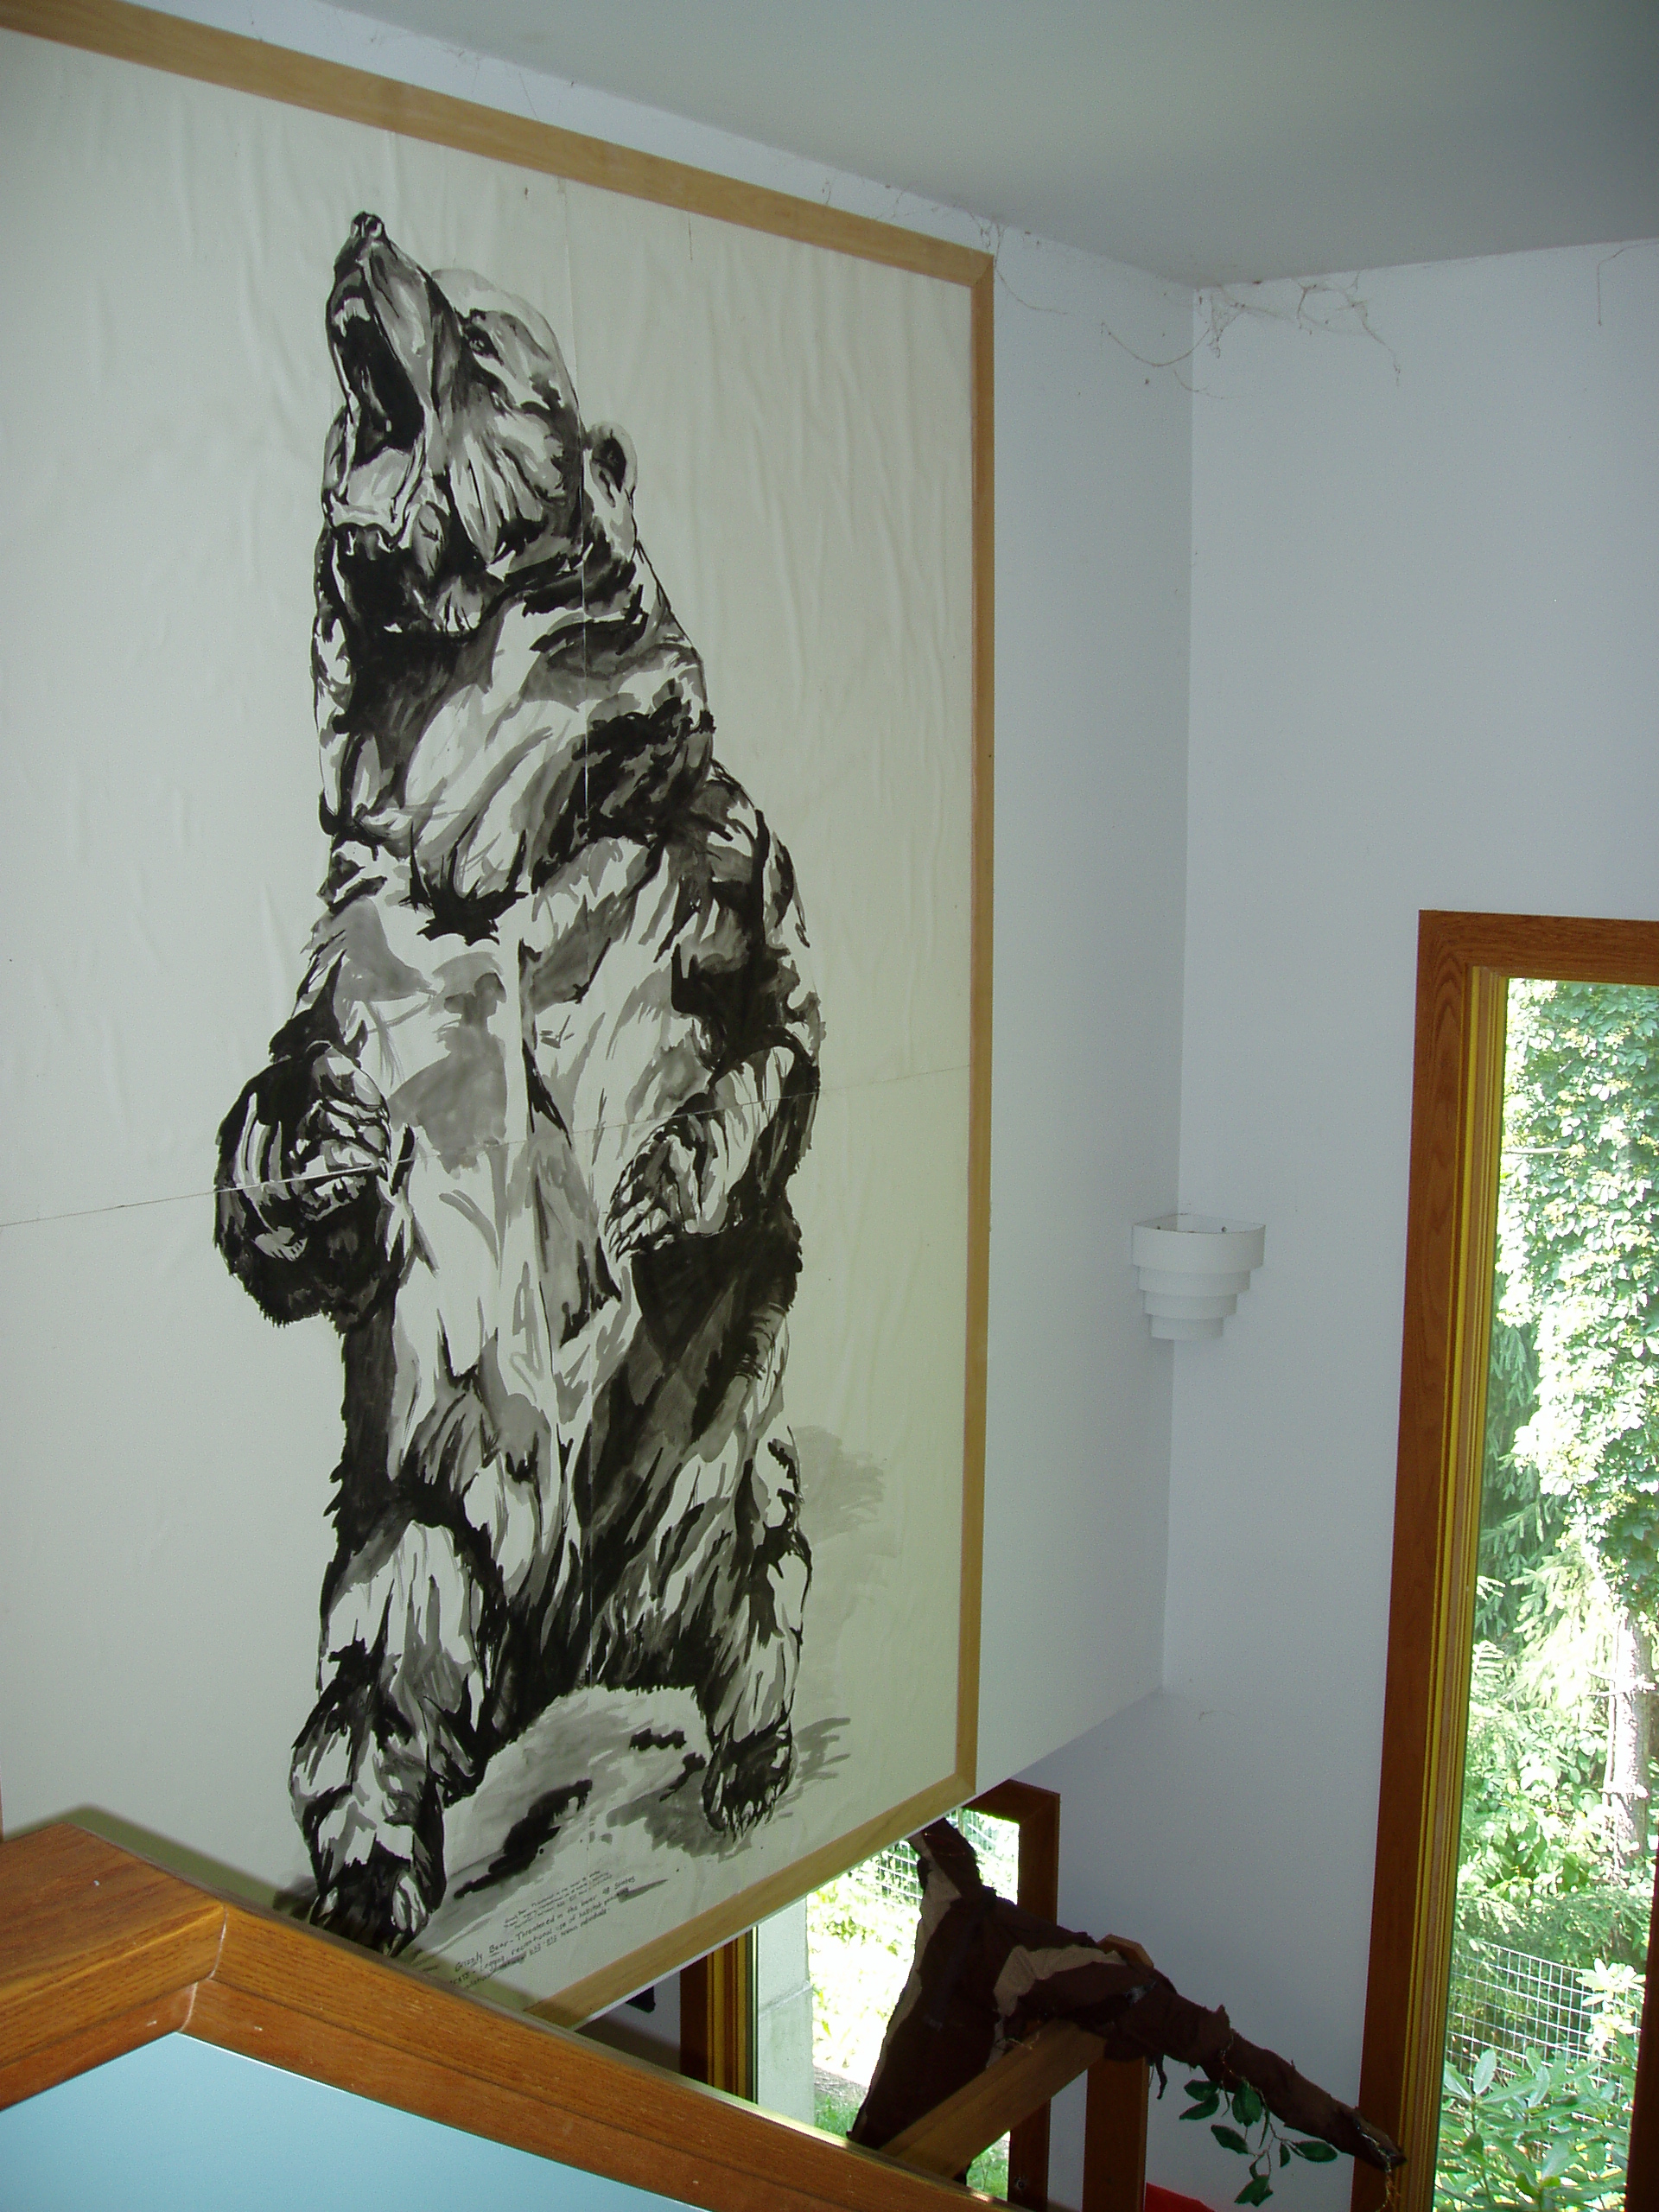 grizzly - 9' x 7'